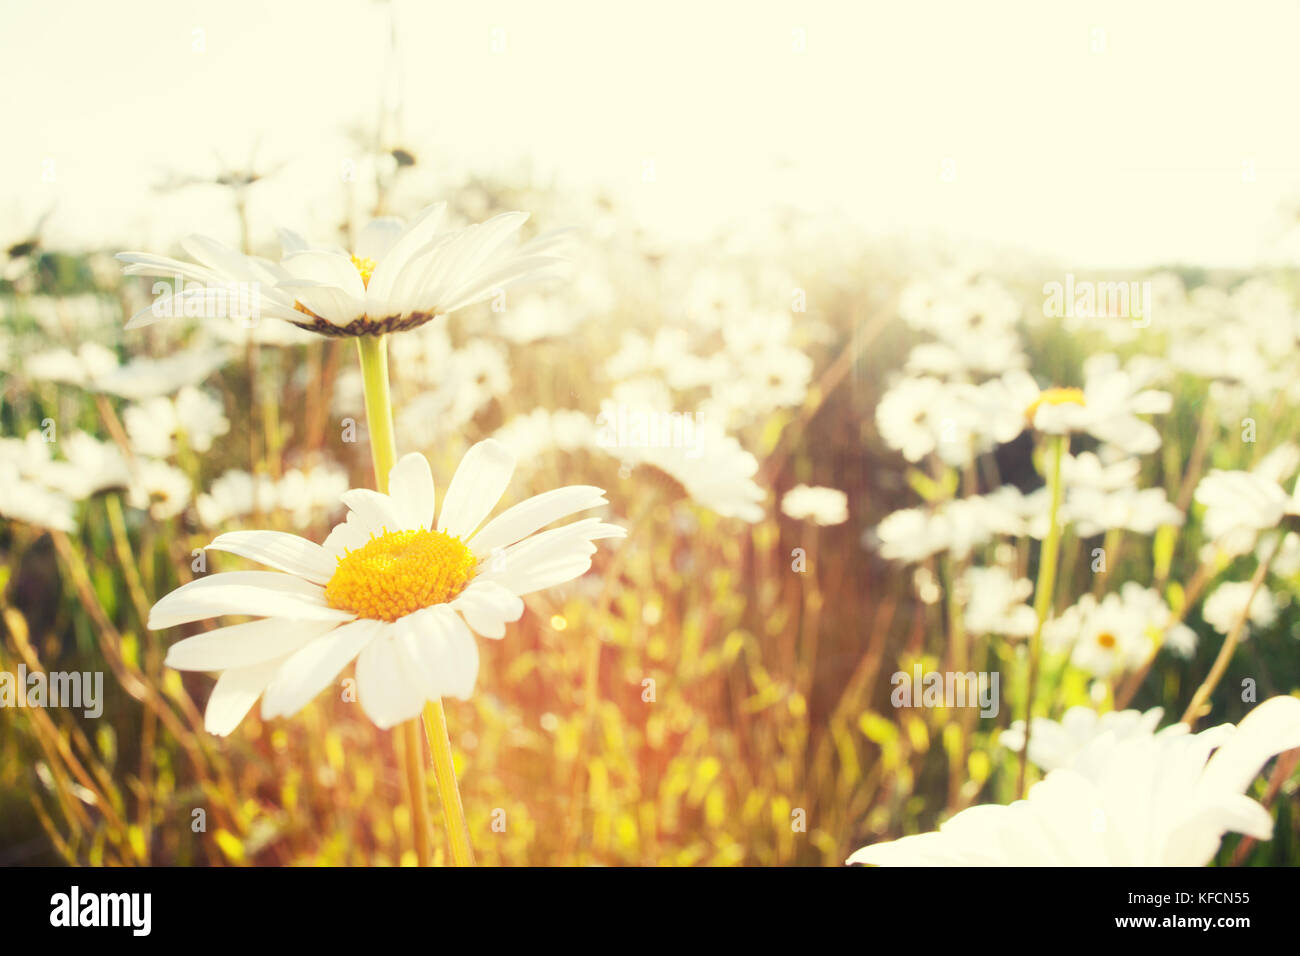 Leucanthemum vulgare or Oxeye daisy (Ox-eye daisy) beautifully backlit with the sun and growing wild in nature. - Stock Image